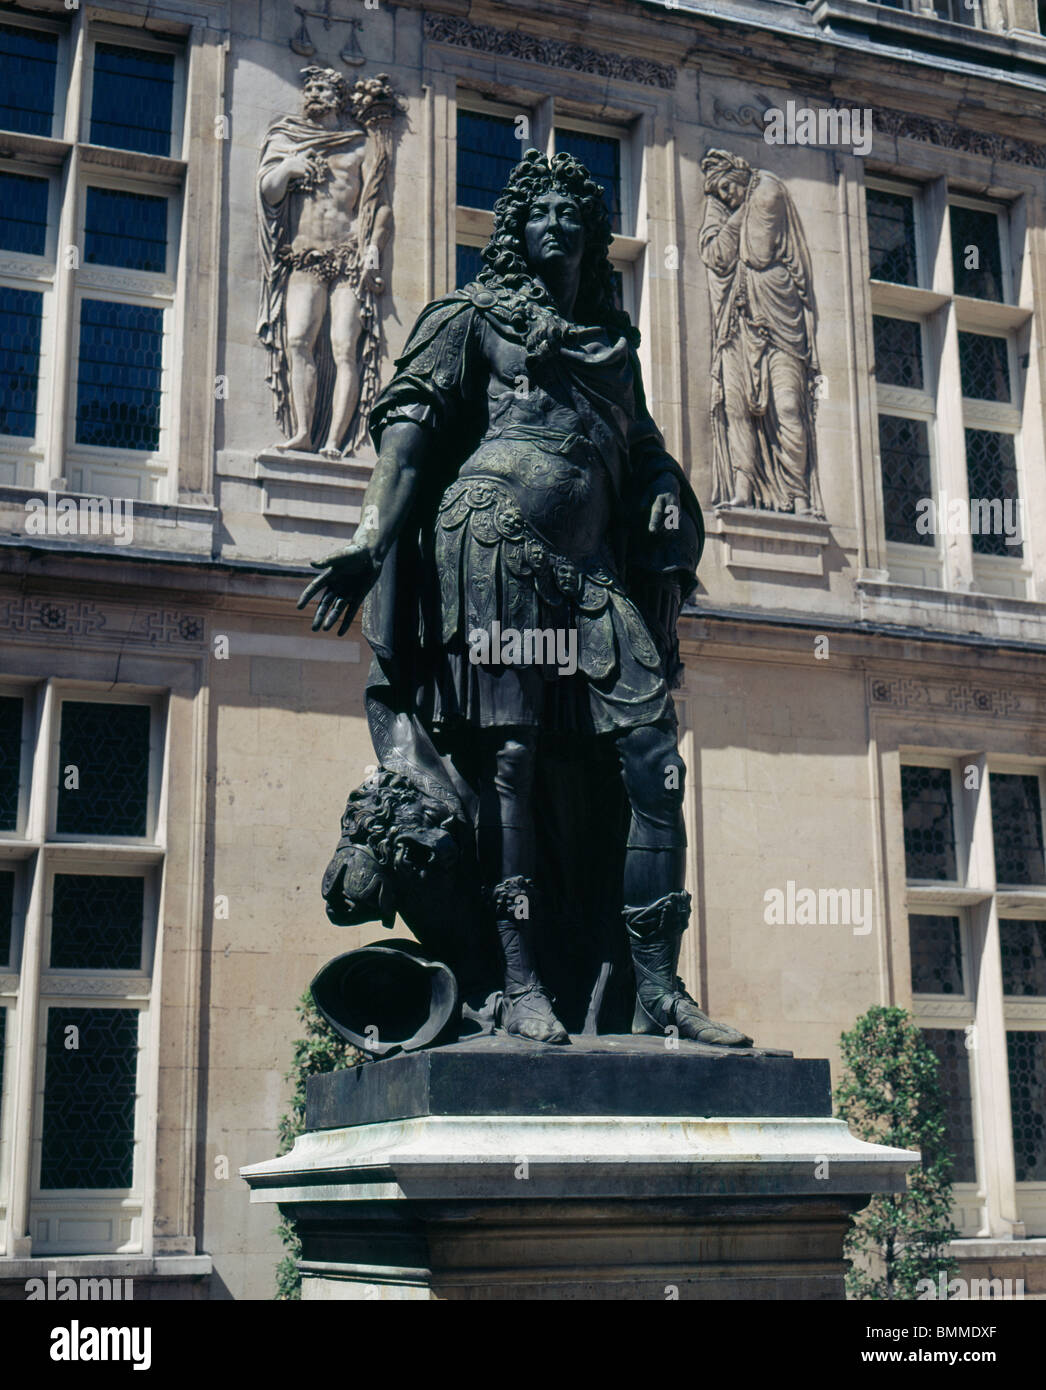 Statue of Louis XIV by Antoine Coysevox 1640-1720, at the Hotel Carnavalet, rebuilt by Francois Mansart in 1655. - Stock Image